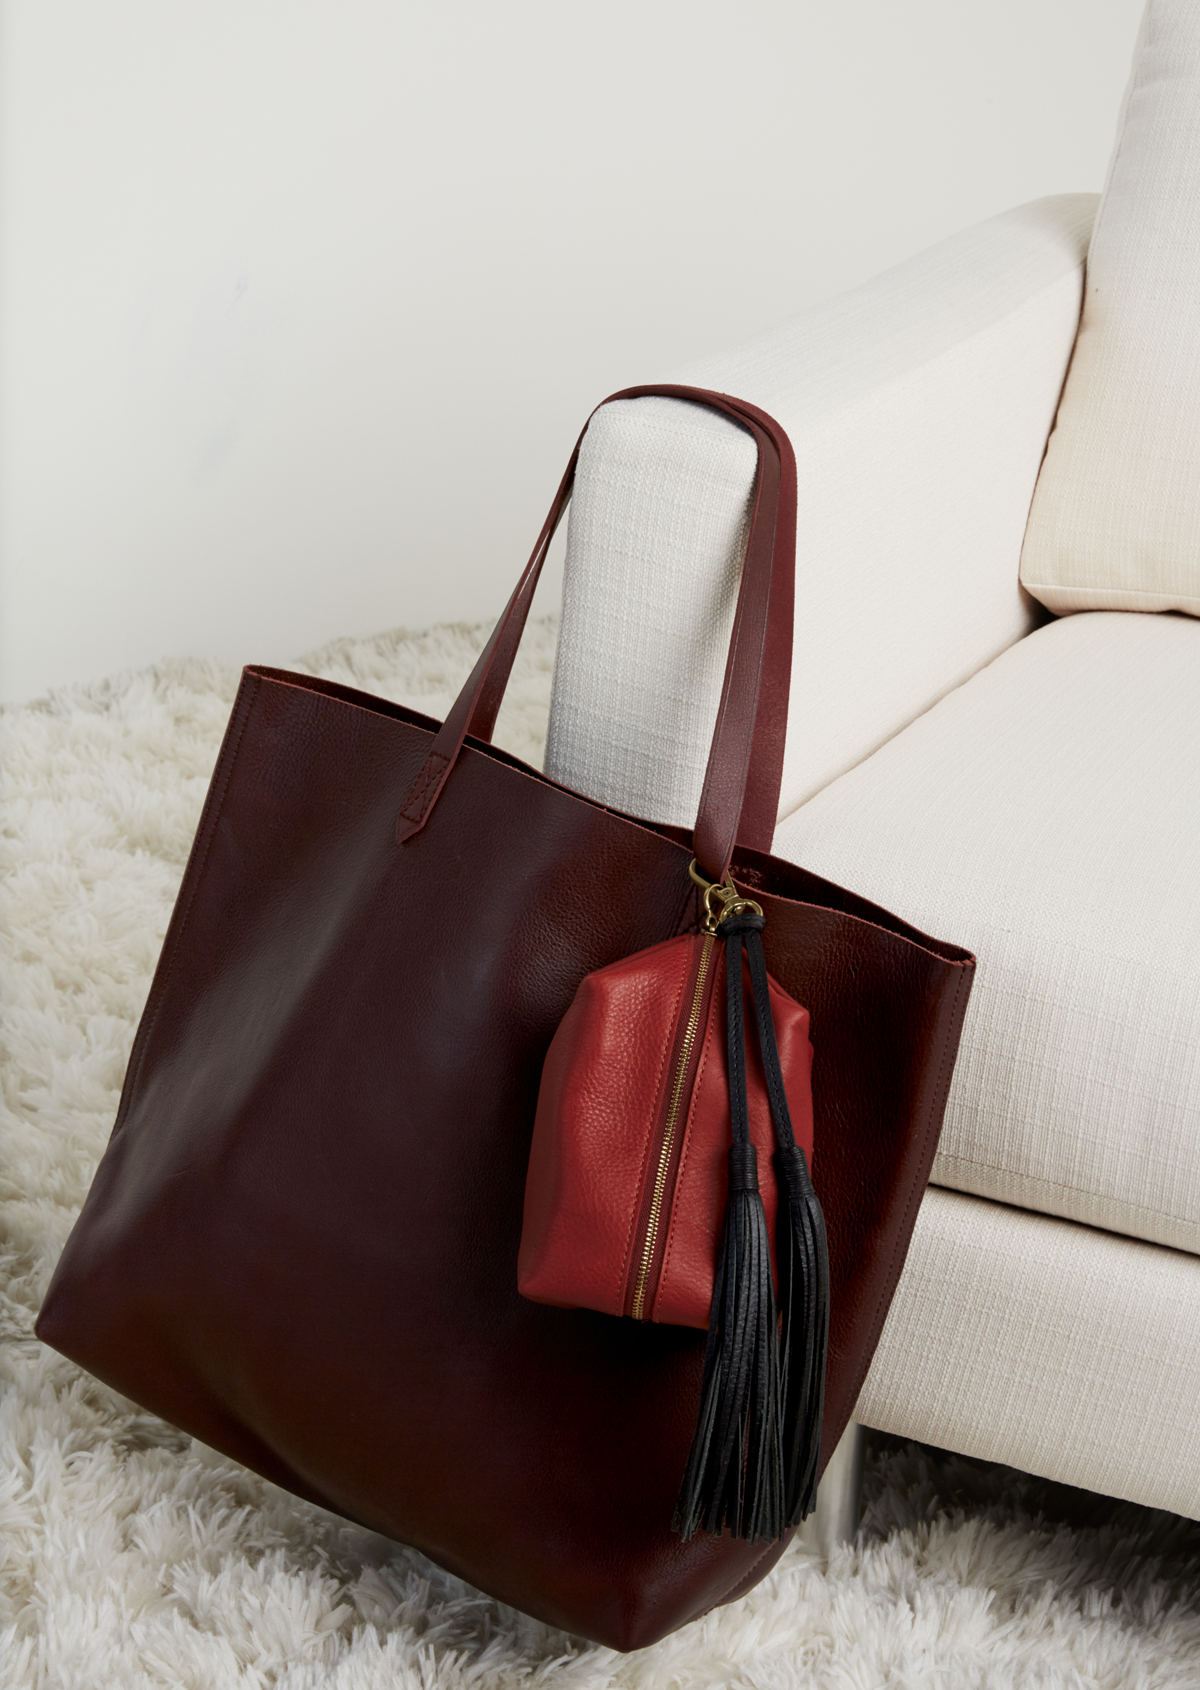 madewell transport tote in dark cabernet, leather travel bag + leather tassel. #totewell